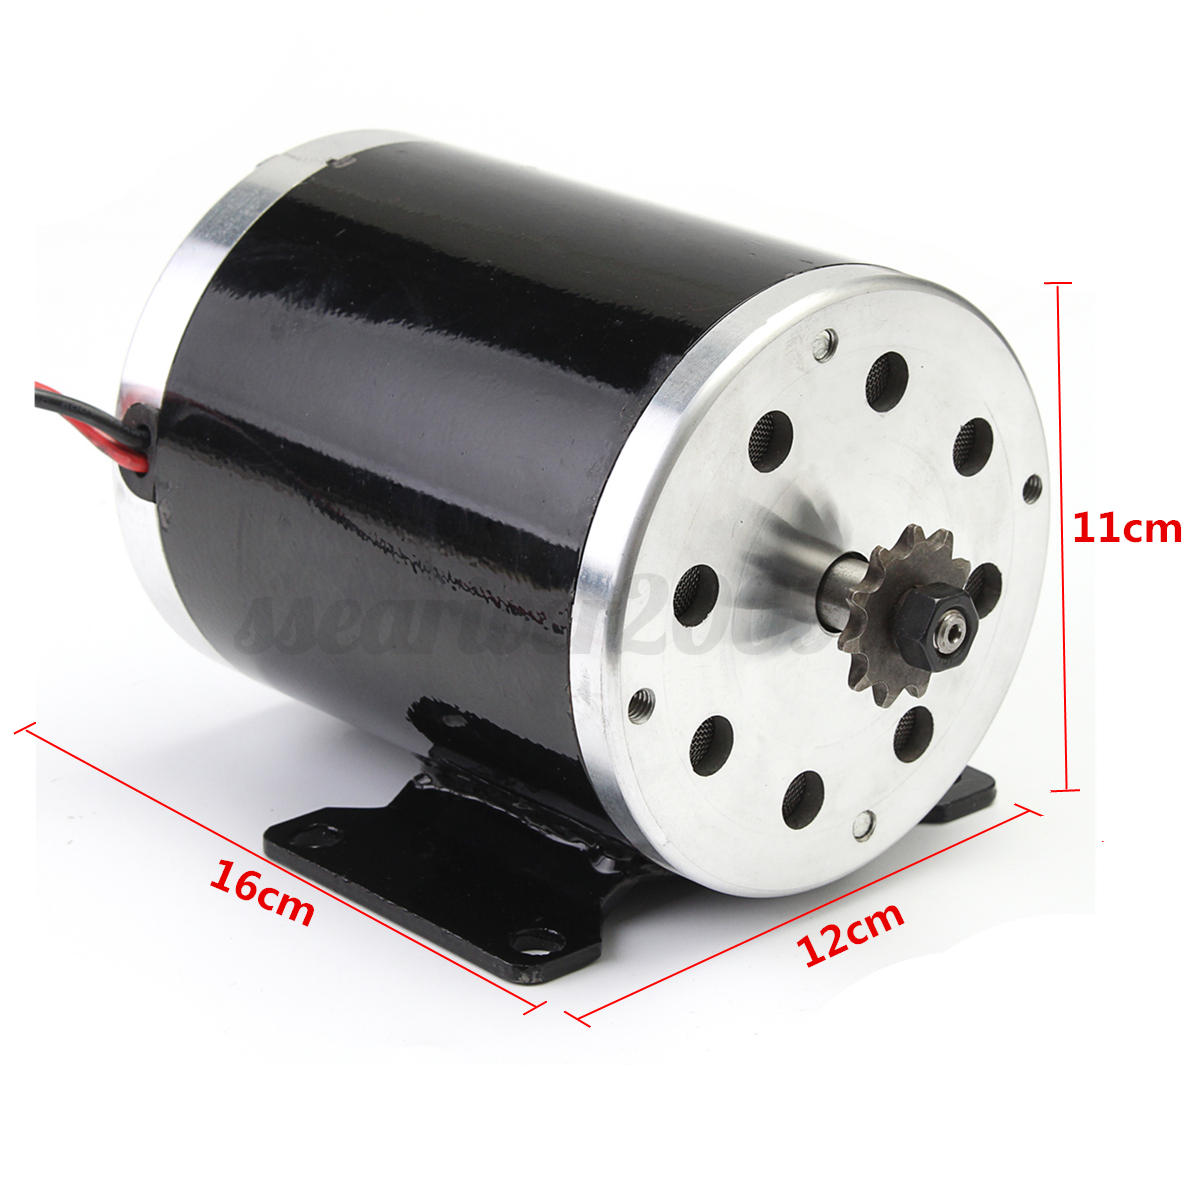 500w 24v Dc Electric Brush Motor Zy1020 For Diy Electric